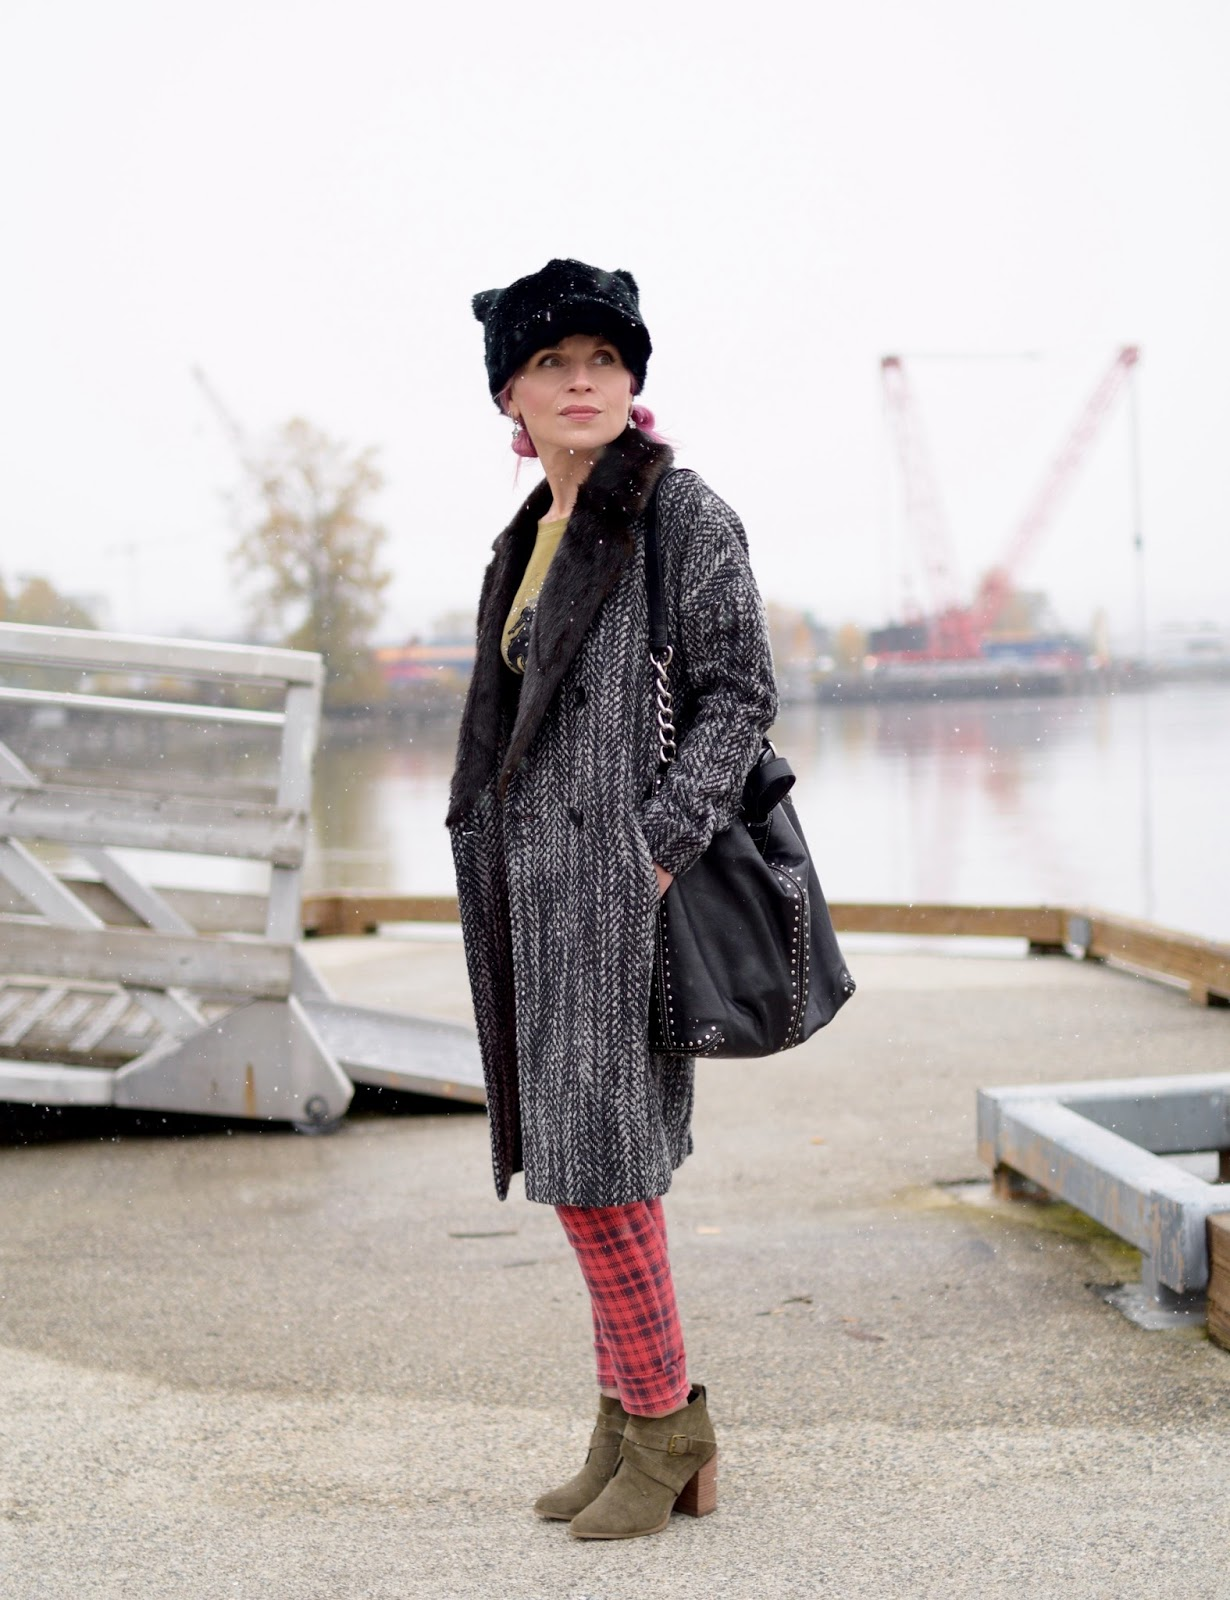 Monika Faulkner outfit inspiration - fur-collared coat, red plaid skinny jeans, olive ankle boots, and a hat with ears